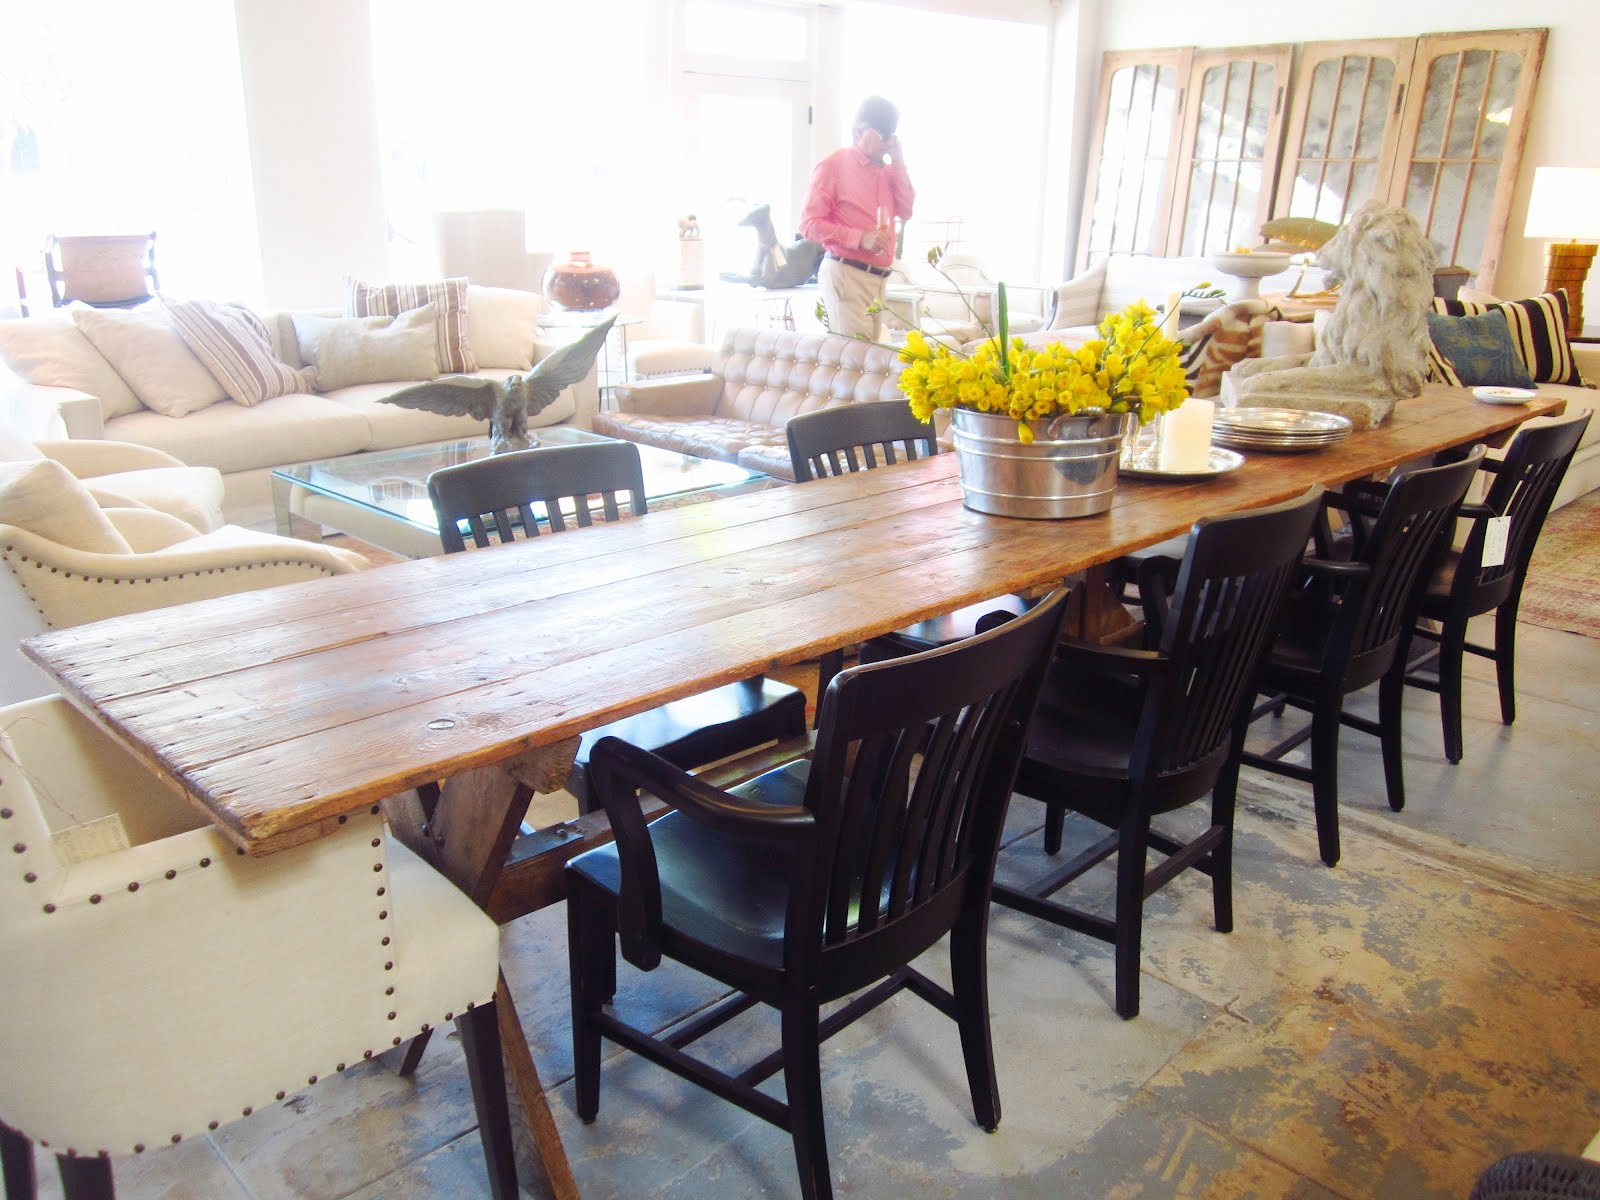 Mitchell co custom furniture f a q 39 s for Farmhouse dining room table set